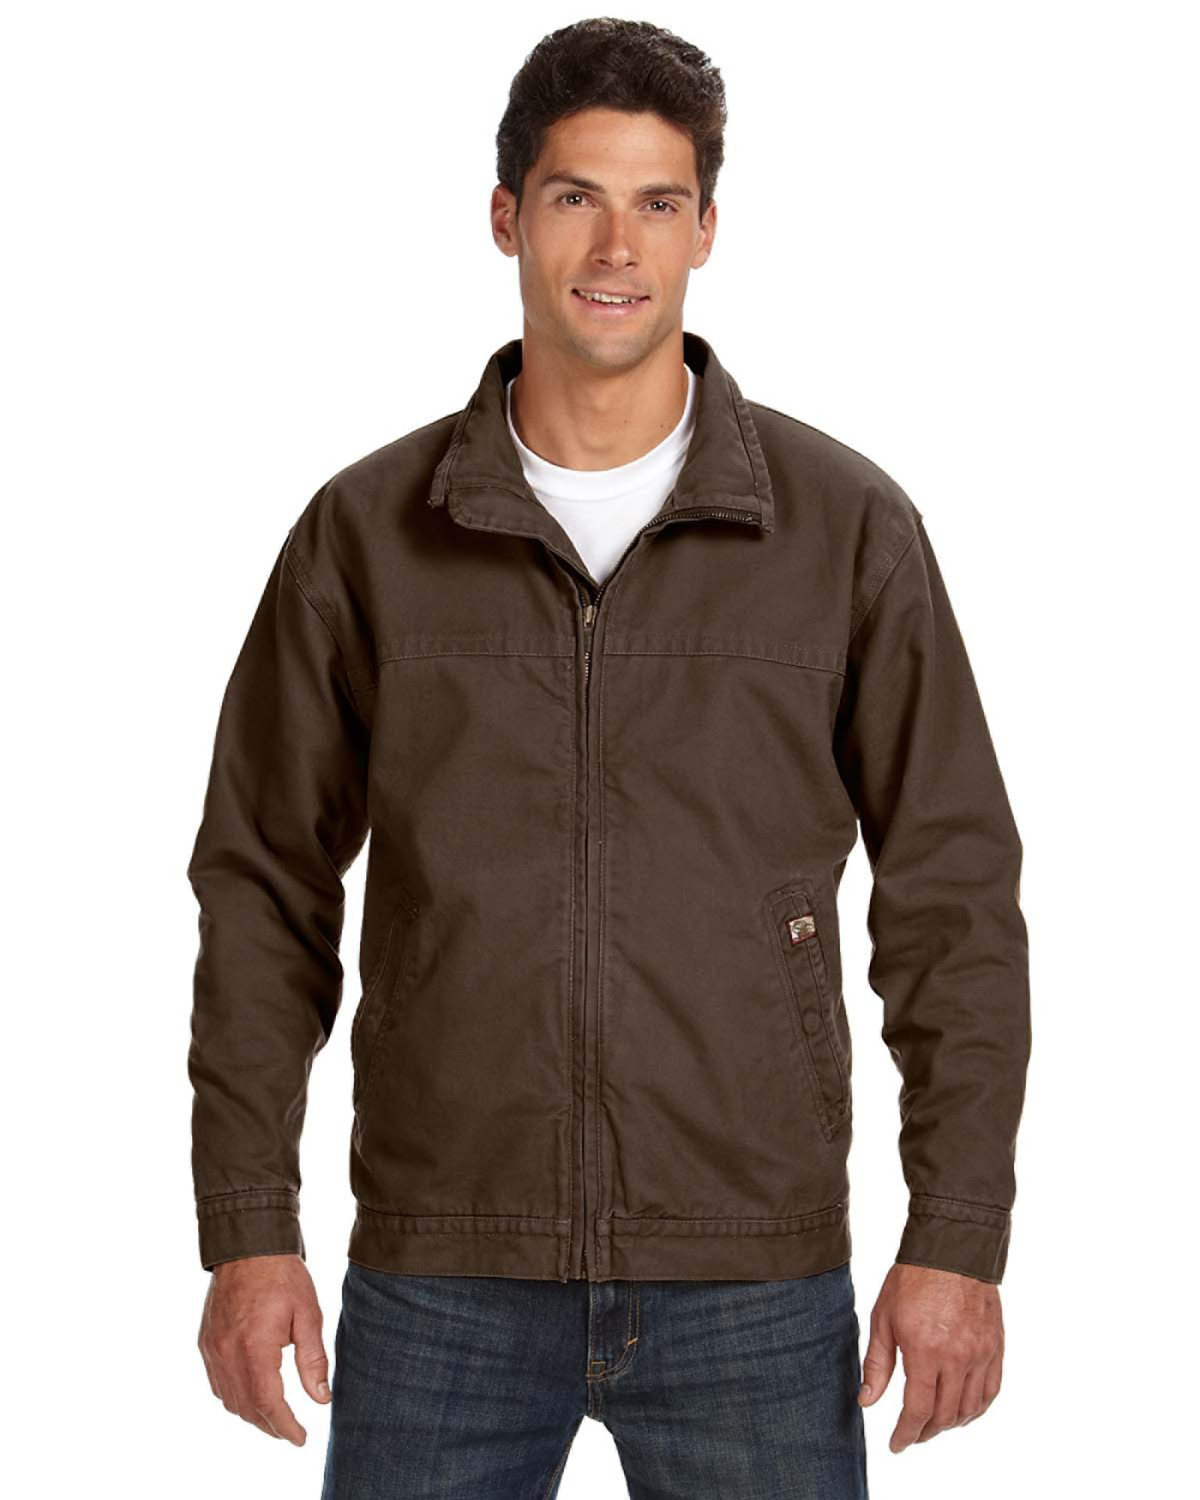 DRI DUCK 5028 - Maverick Boulder Cloth Jacket with Blanket Lining